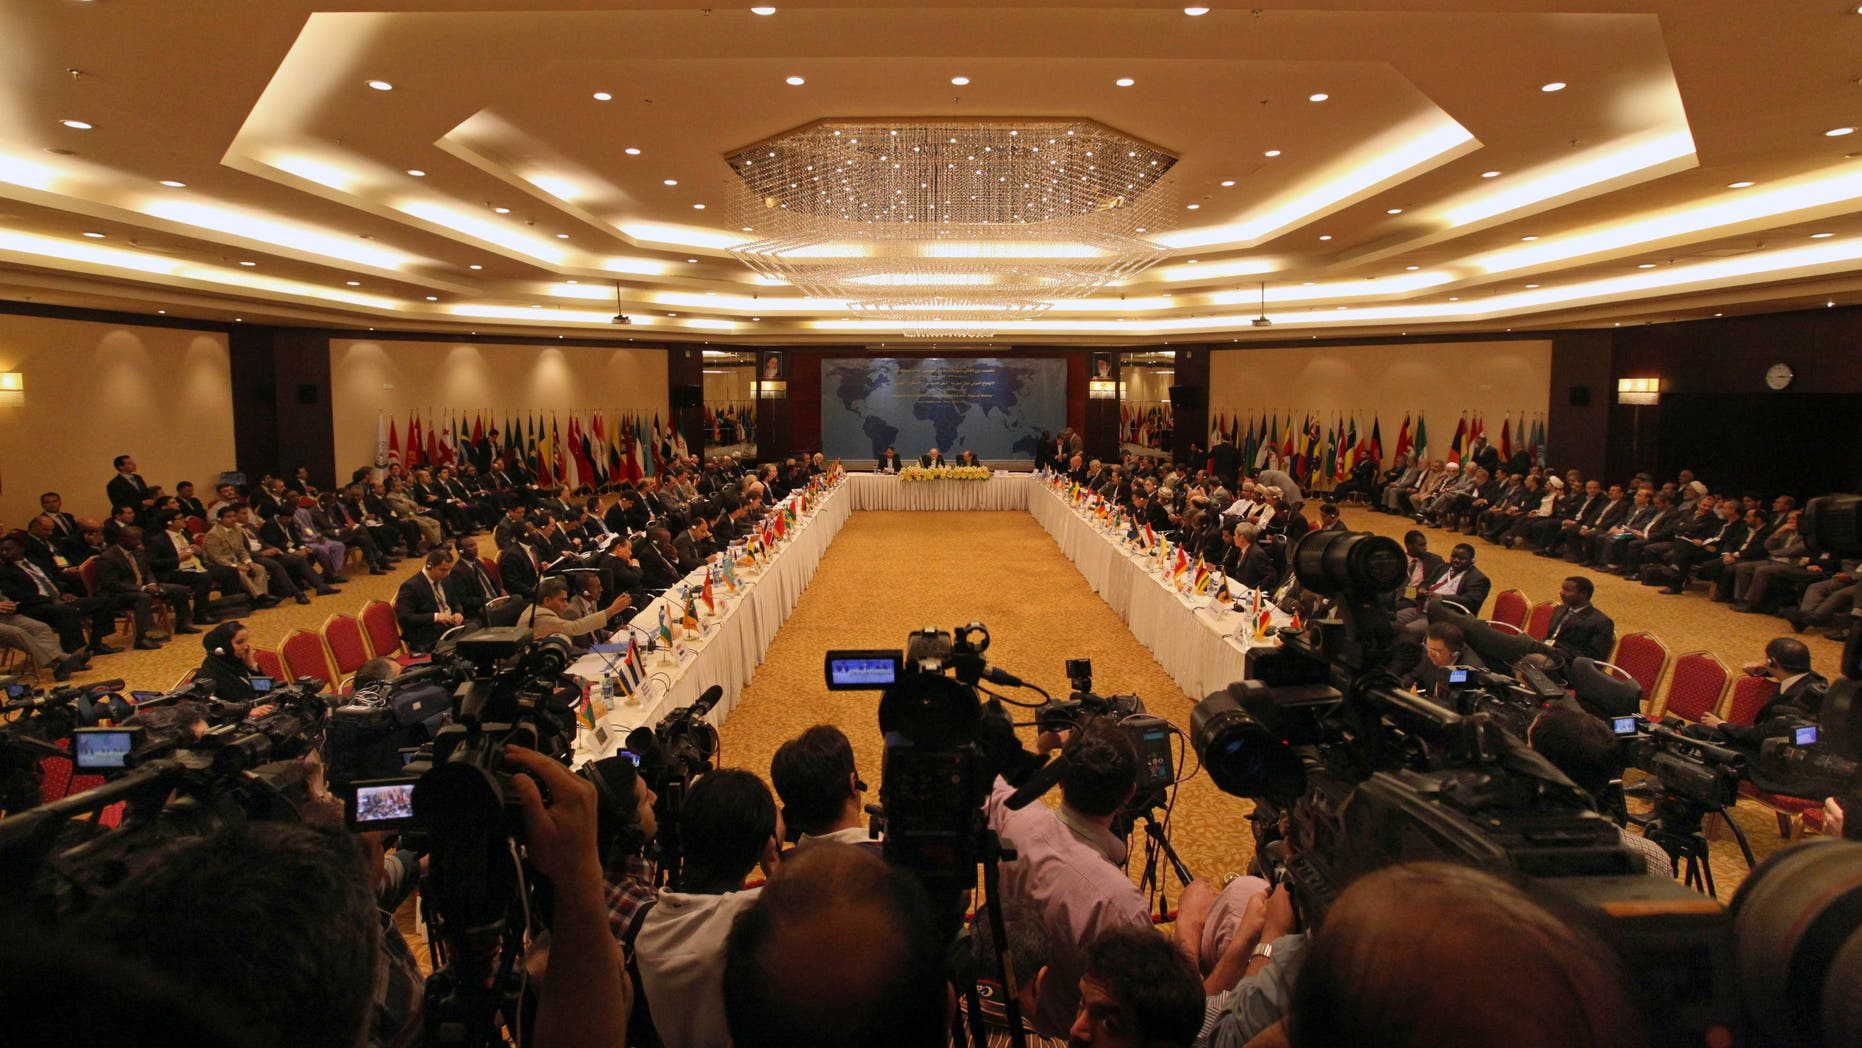 """A general view of an international conference on Syria called """"Political Solution- Regional Stability"""", at an hotel, in Tehran, Iran Wednesday, May 29, 2013. Iran has expressed its support for an international conference to end the bloodshed in Syria. Iranian Foreign Minister Ali Akbar Salehi says Tehran """"supports Geneva talks and U.N. efforts."""" The U.S. and Russia are leading a joint push to launch Syria peace talks, possibly next month in Geneva, though there is little evidence to suggest that either side in Syria is ready to halt more than two years of violence that has killed more than 70,000 people. (AP Photo/Vahid Salemi)"""